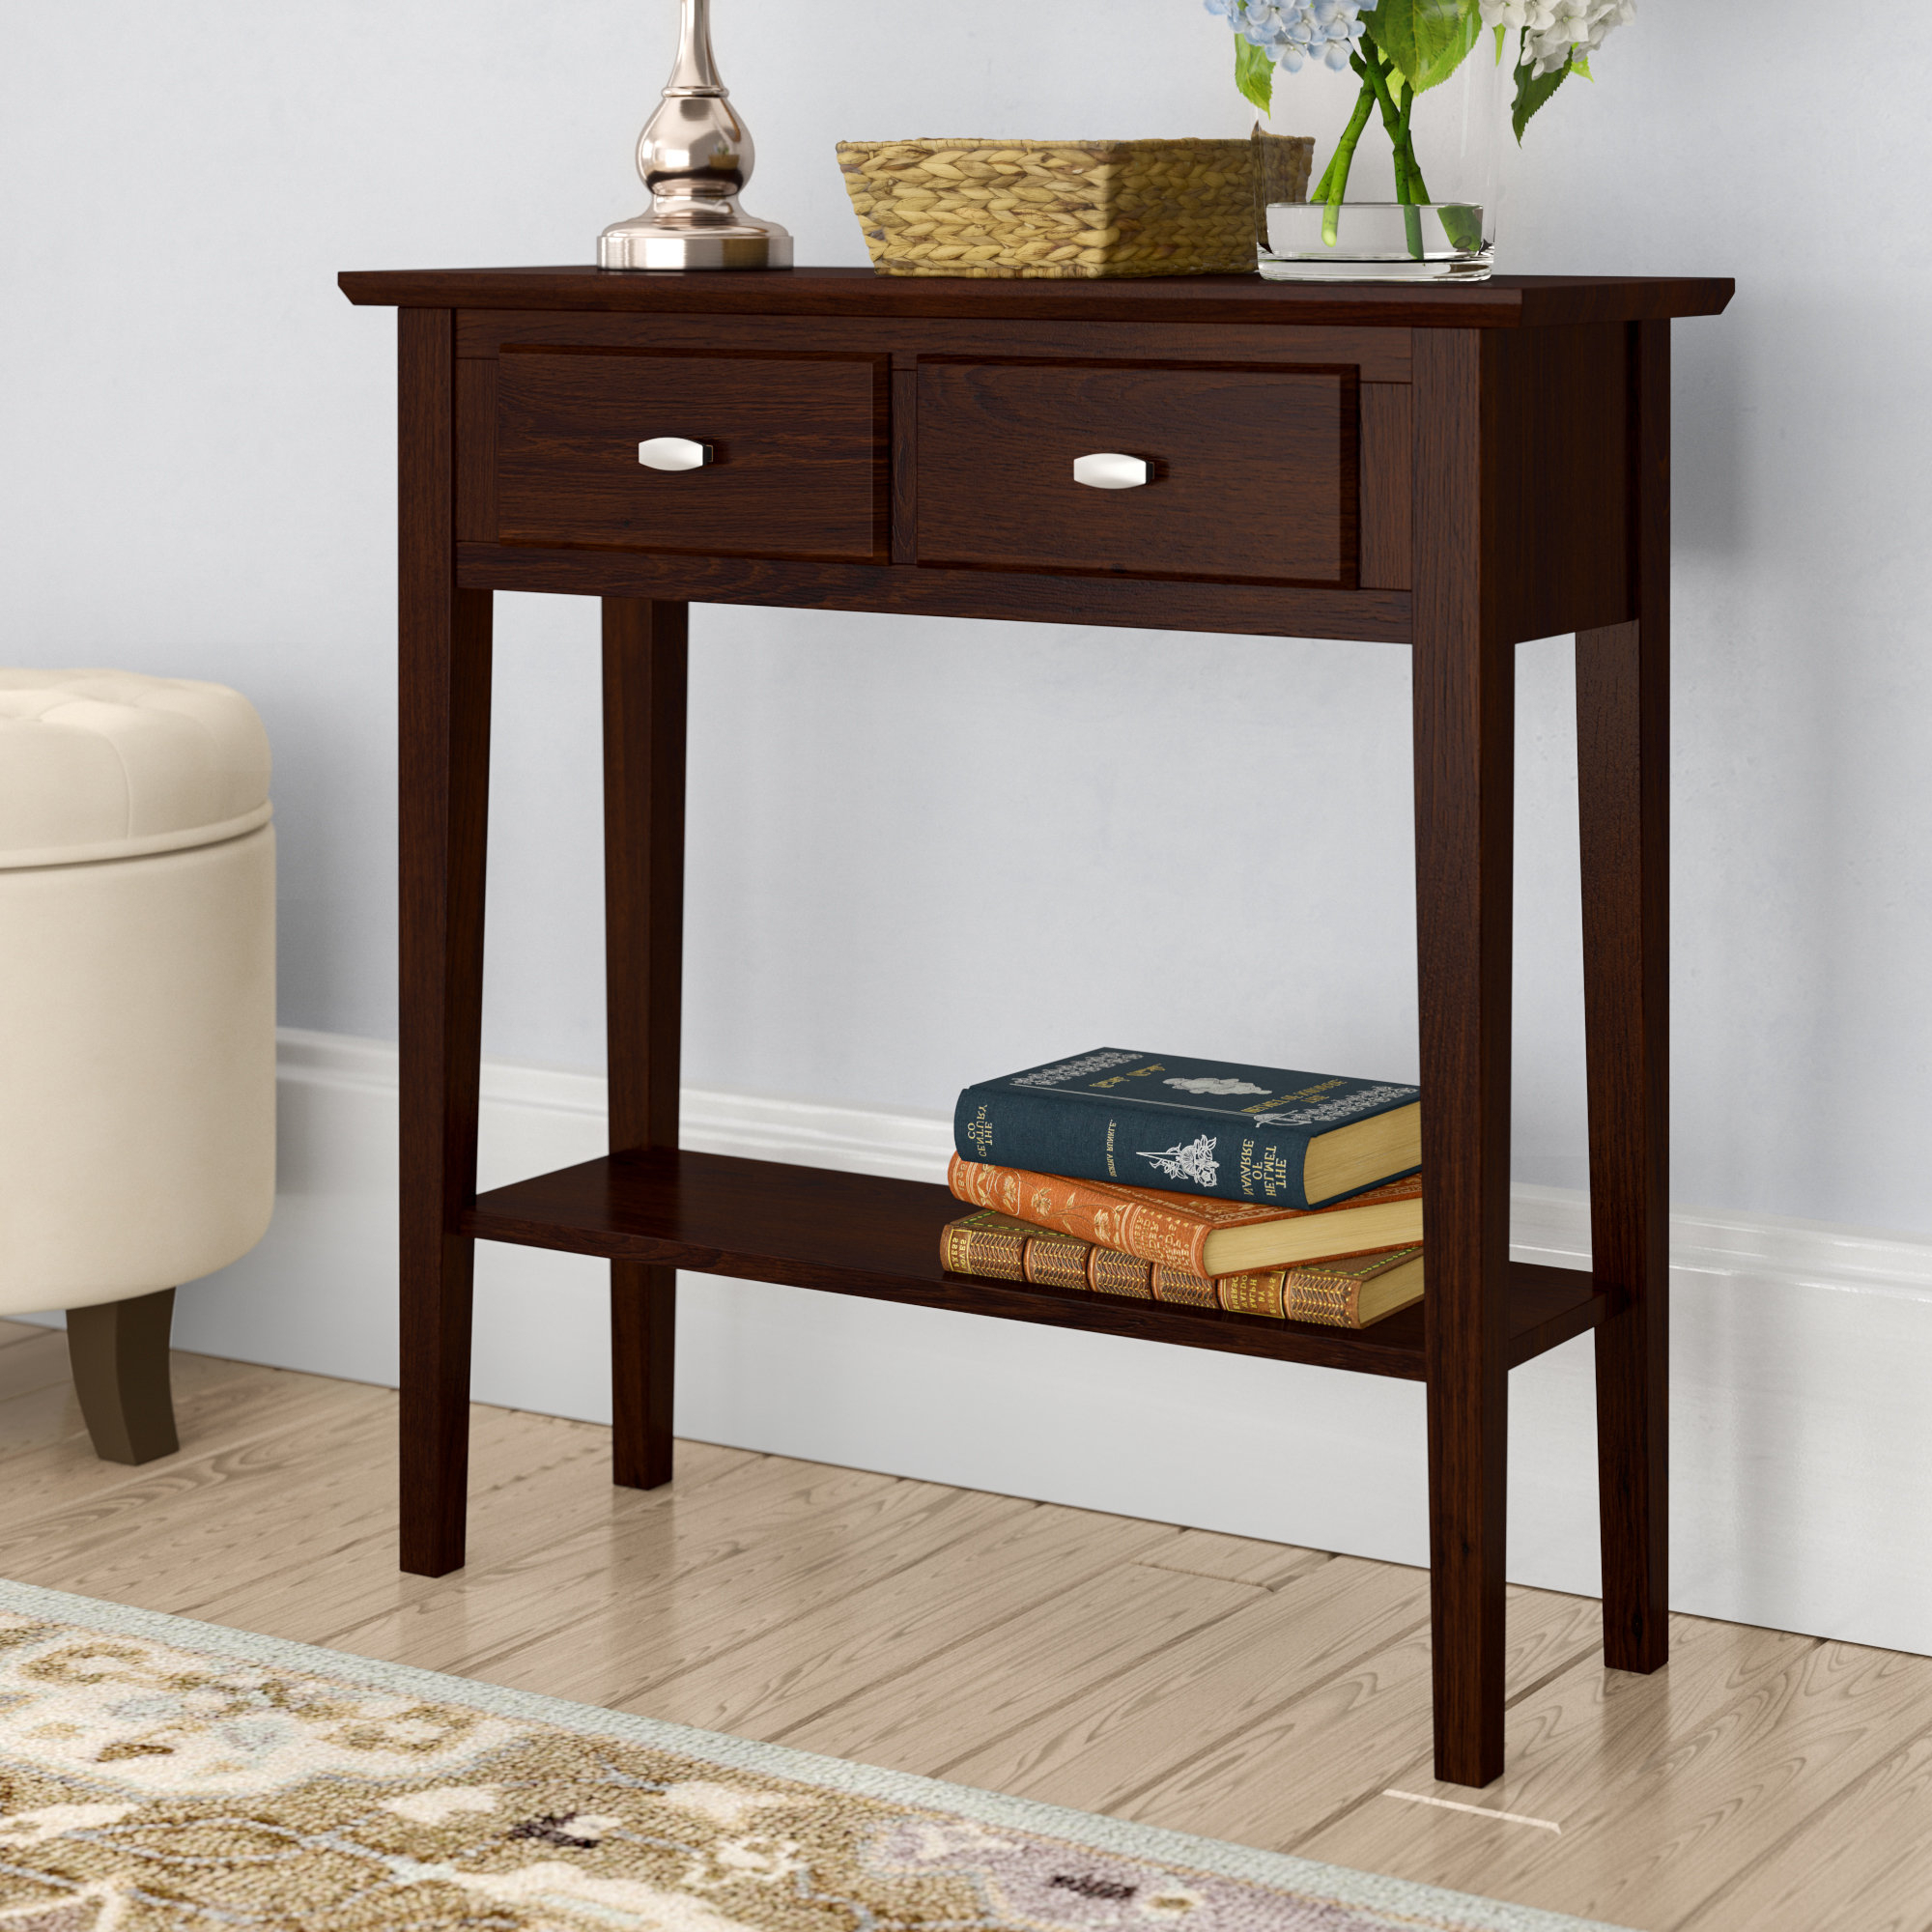 Narrow Low Console Table | Wayfair With Layered Wood Small Square Console Tables (View 3 of 20)